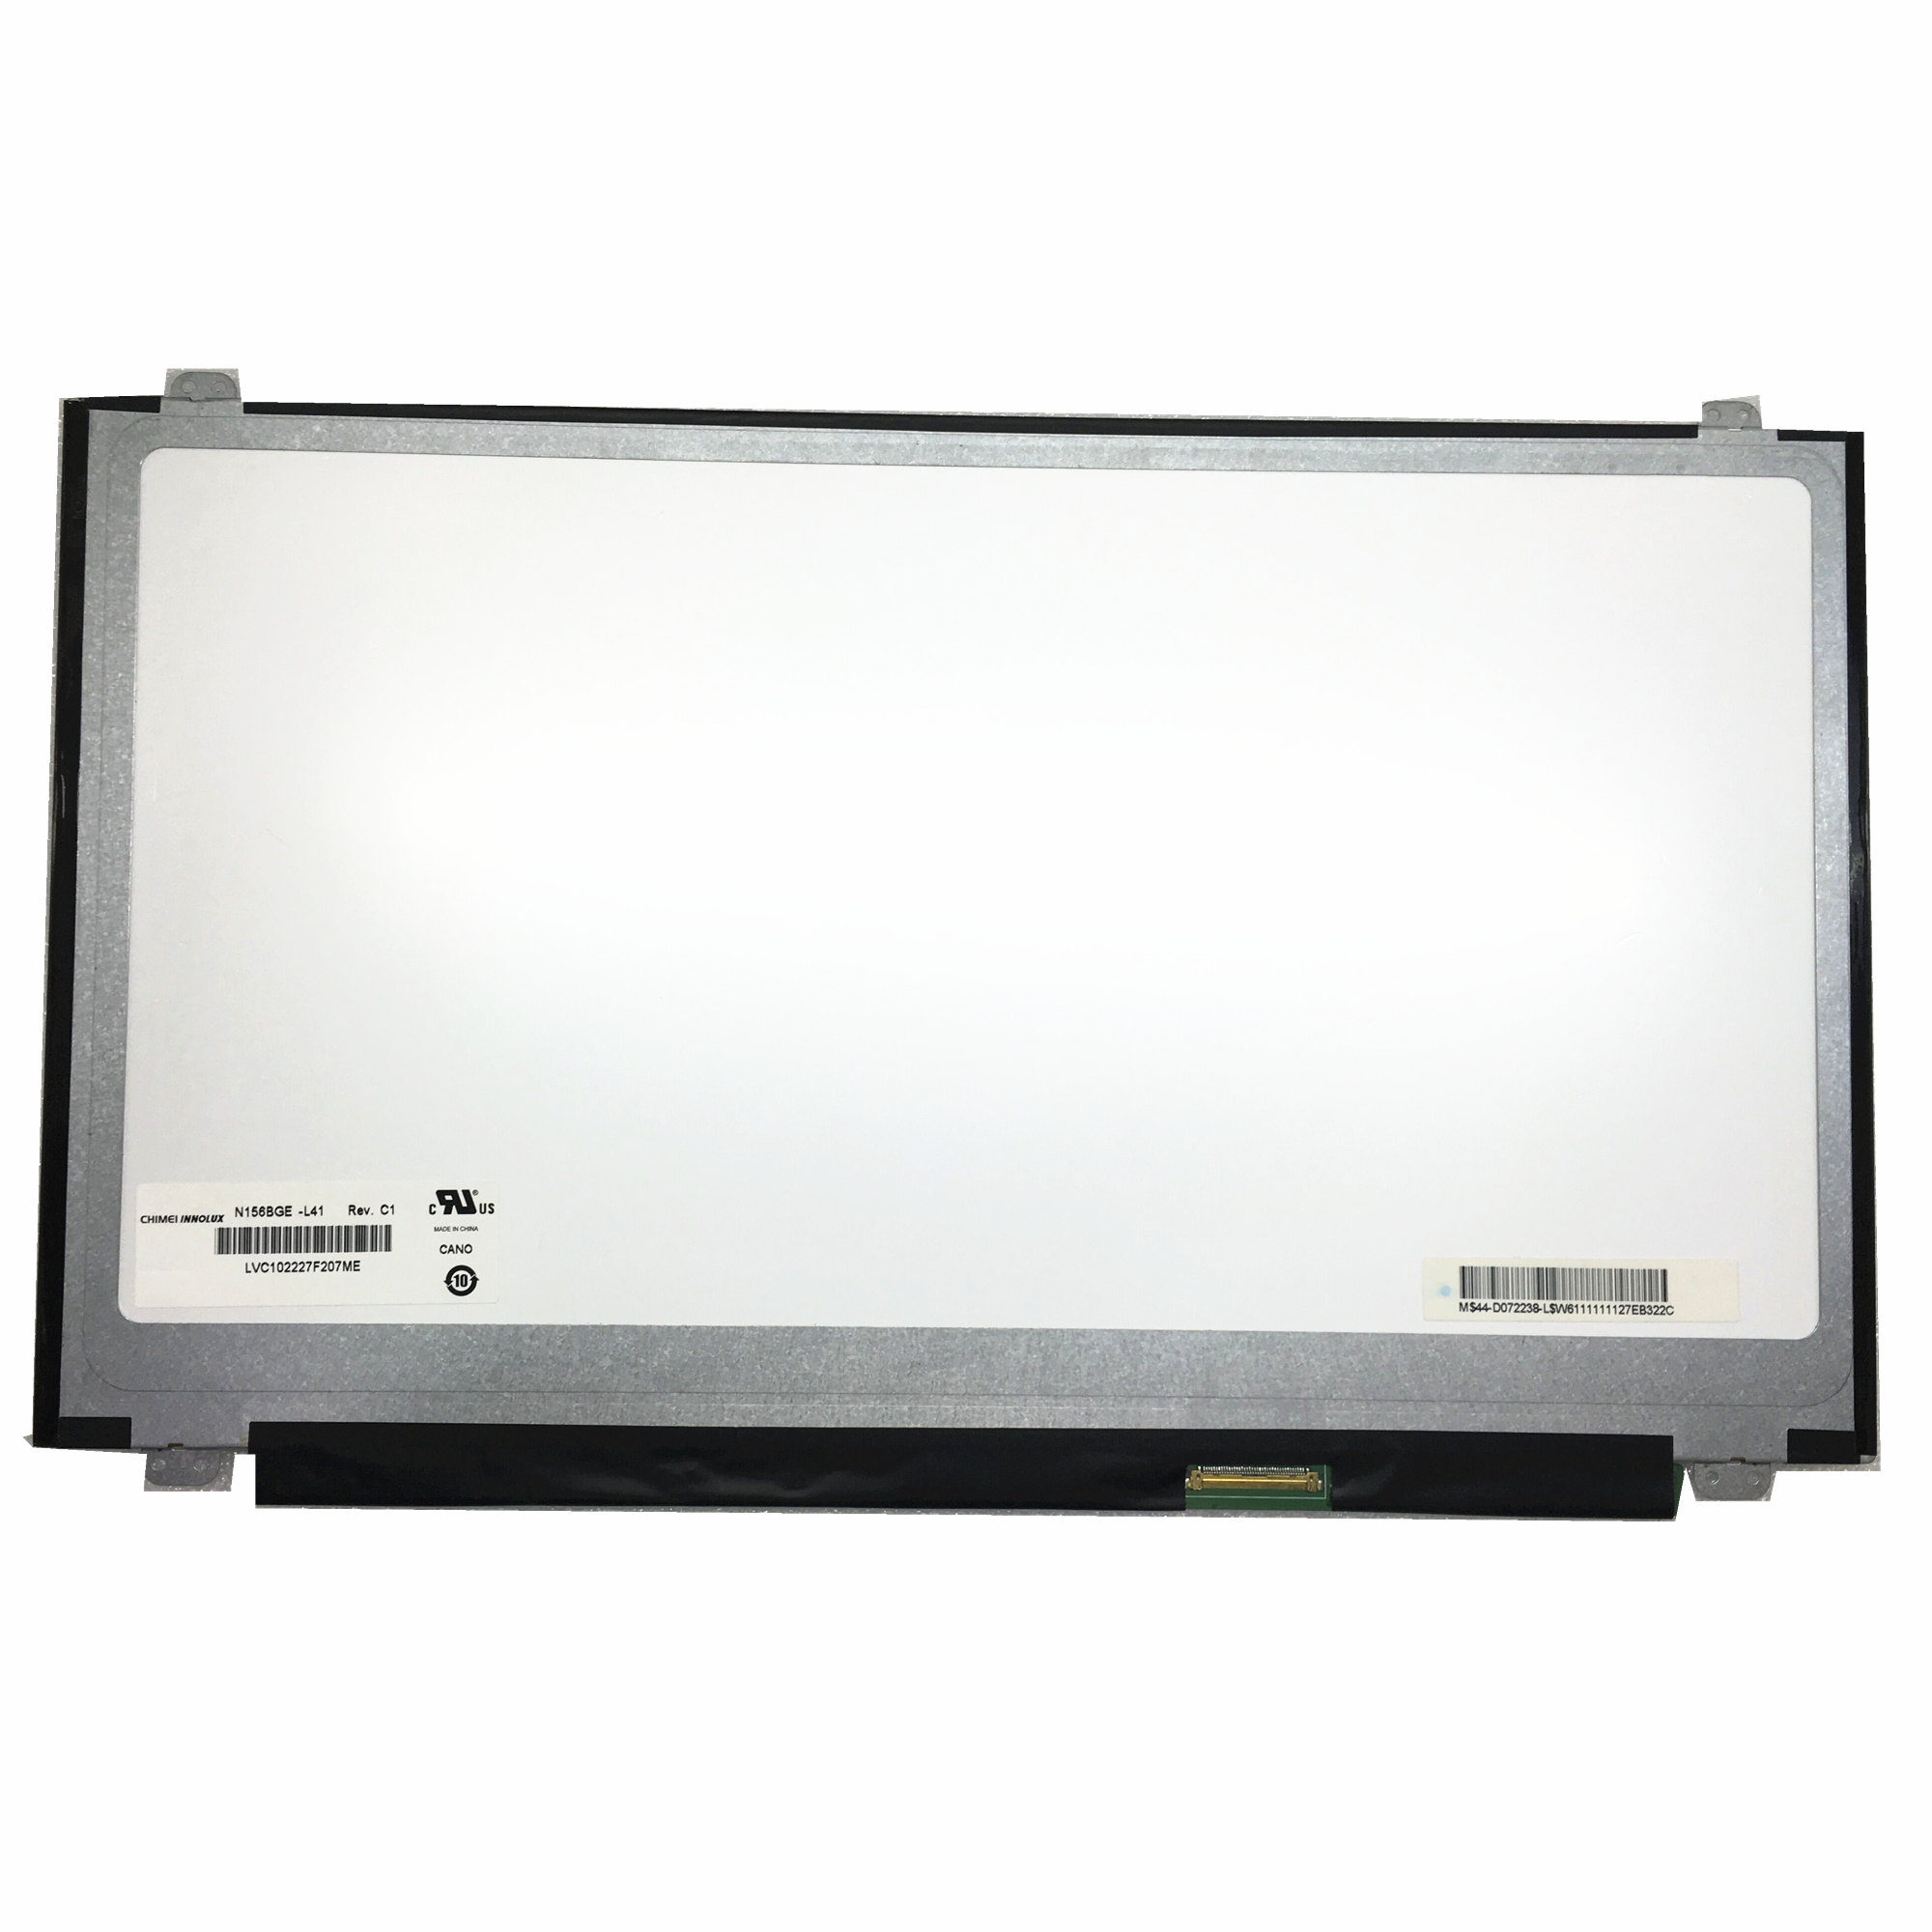 Free Shipping N156BGE L41 N156BGE L31 LTN156AT30 P01 LTN156AT20 H01 W01 LP156WH3 TLSA Laptop LCD Screen 1366*768 LVDS 40pin-in Laptop LCD Screen from Computer & Office on